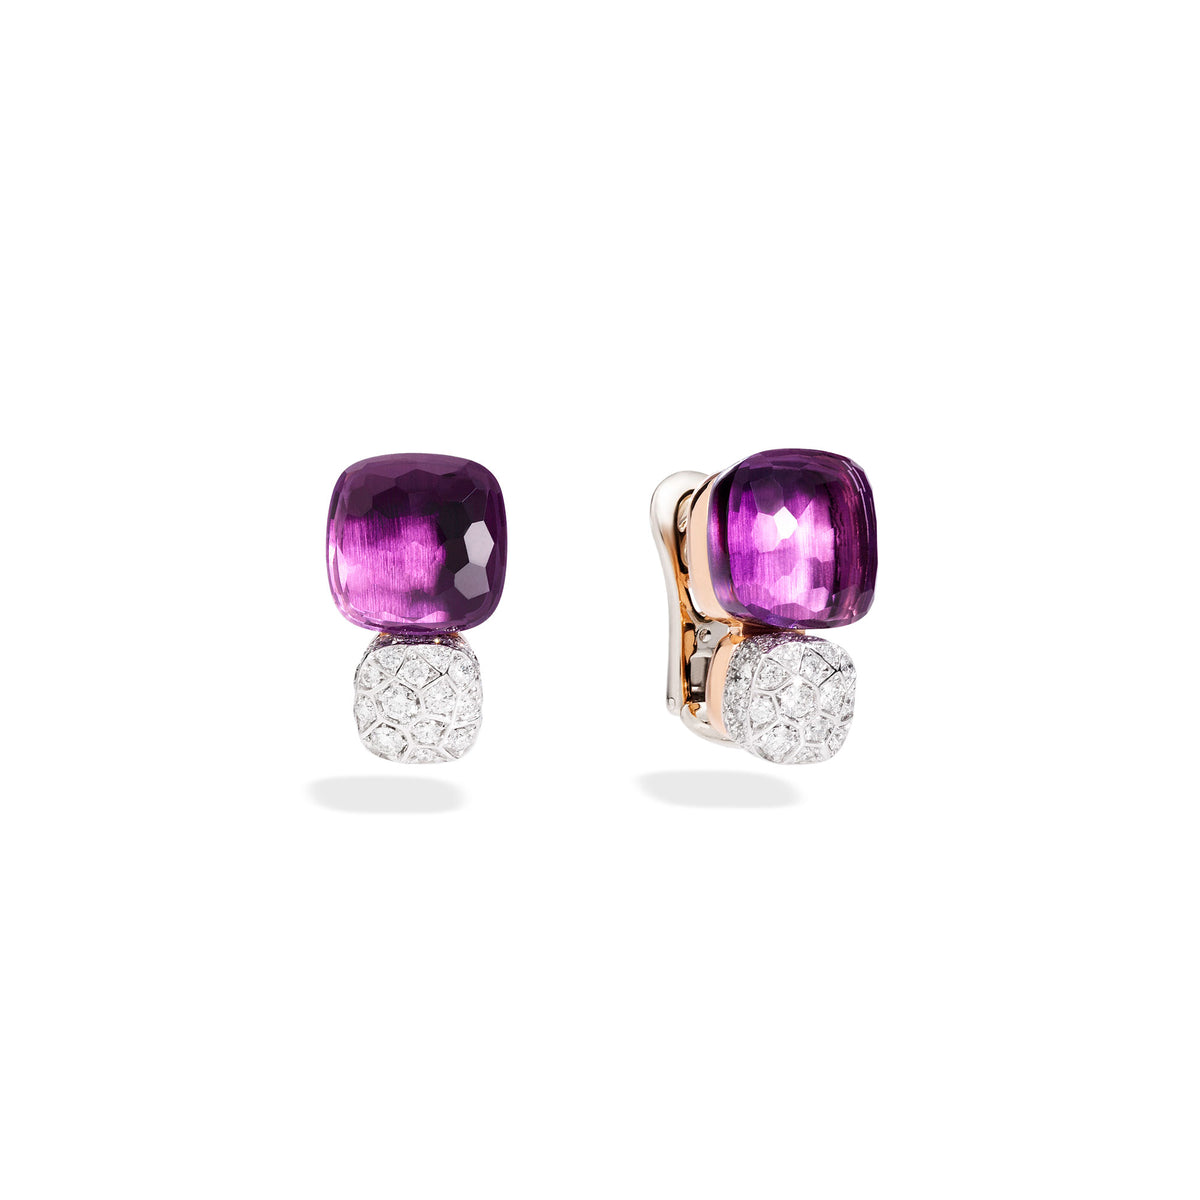 Nudo Maxi Earrings in 18k Rose and White Gold with Amethyst and Diamonds